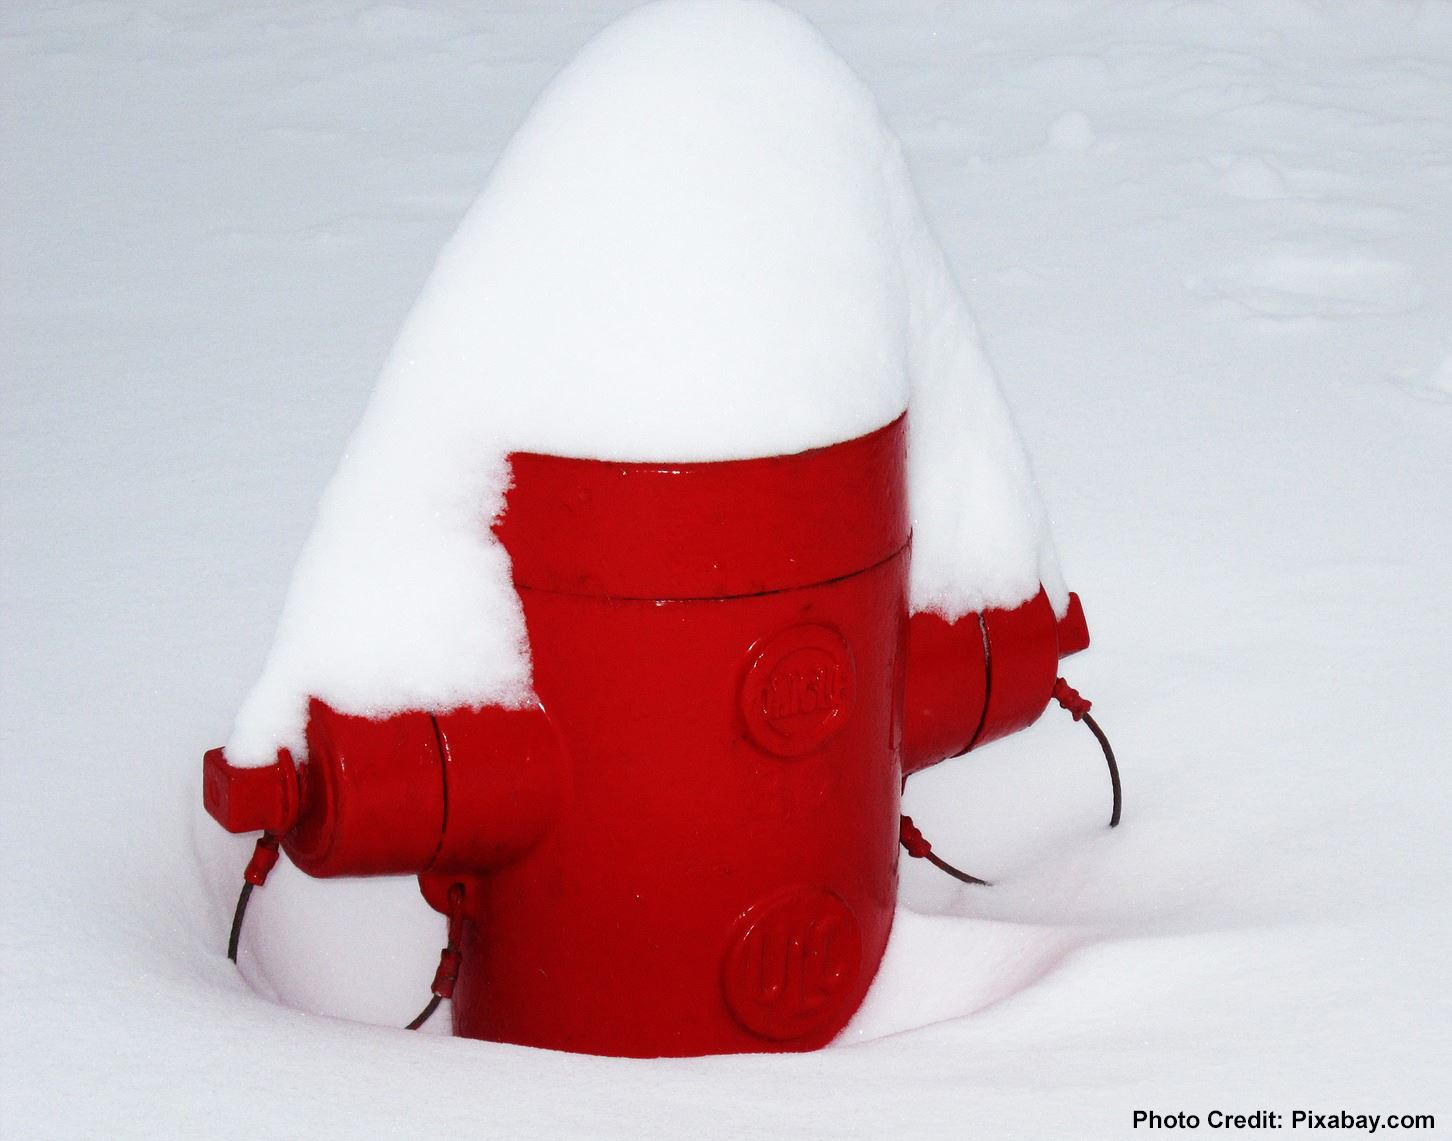 Fire Hydrant Covered with Snow